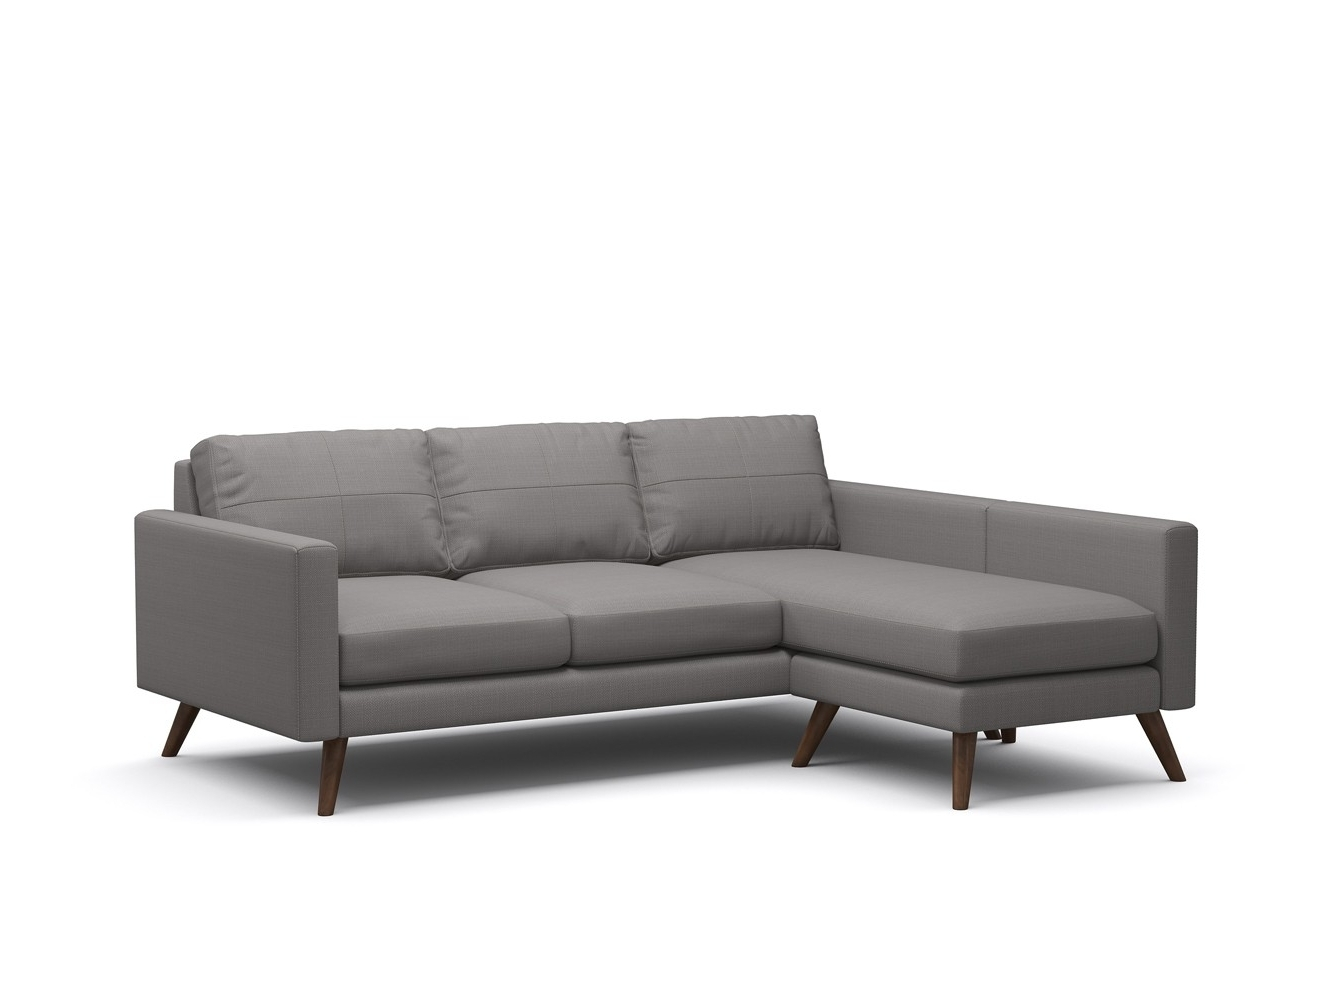 Apartment Sofas Throughout Most Recently Released Dane Apartment Sofa – Truemodern™ (View 14 of 20)